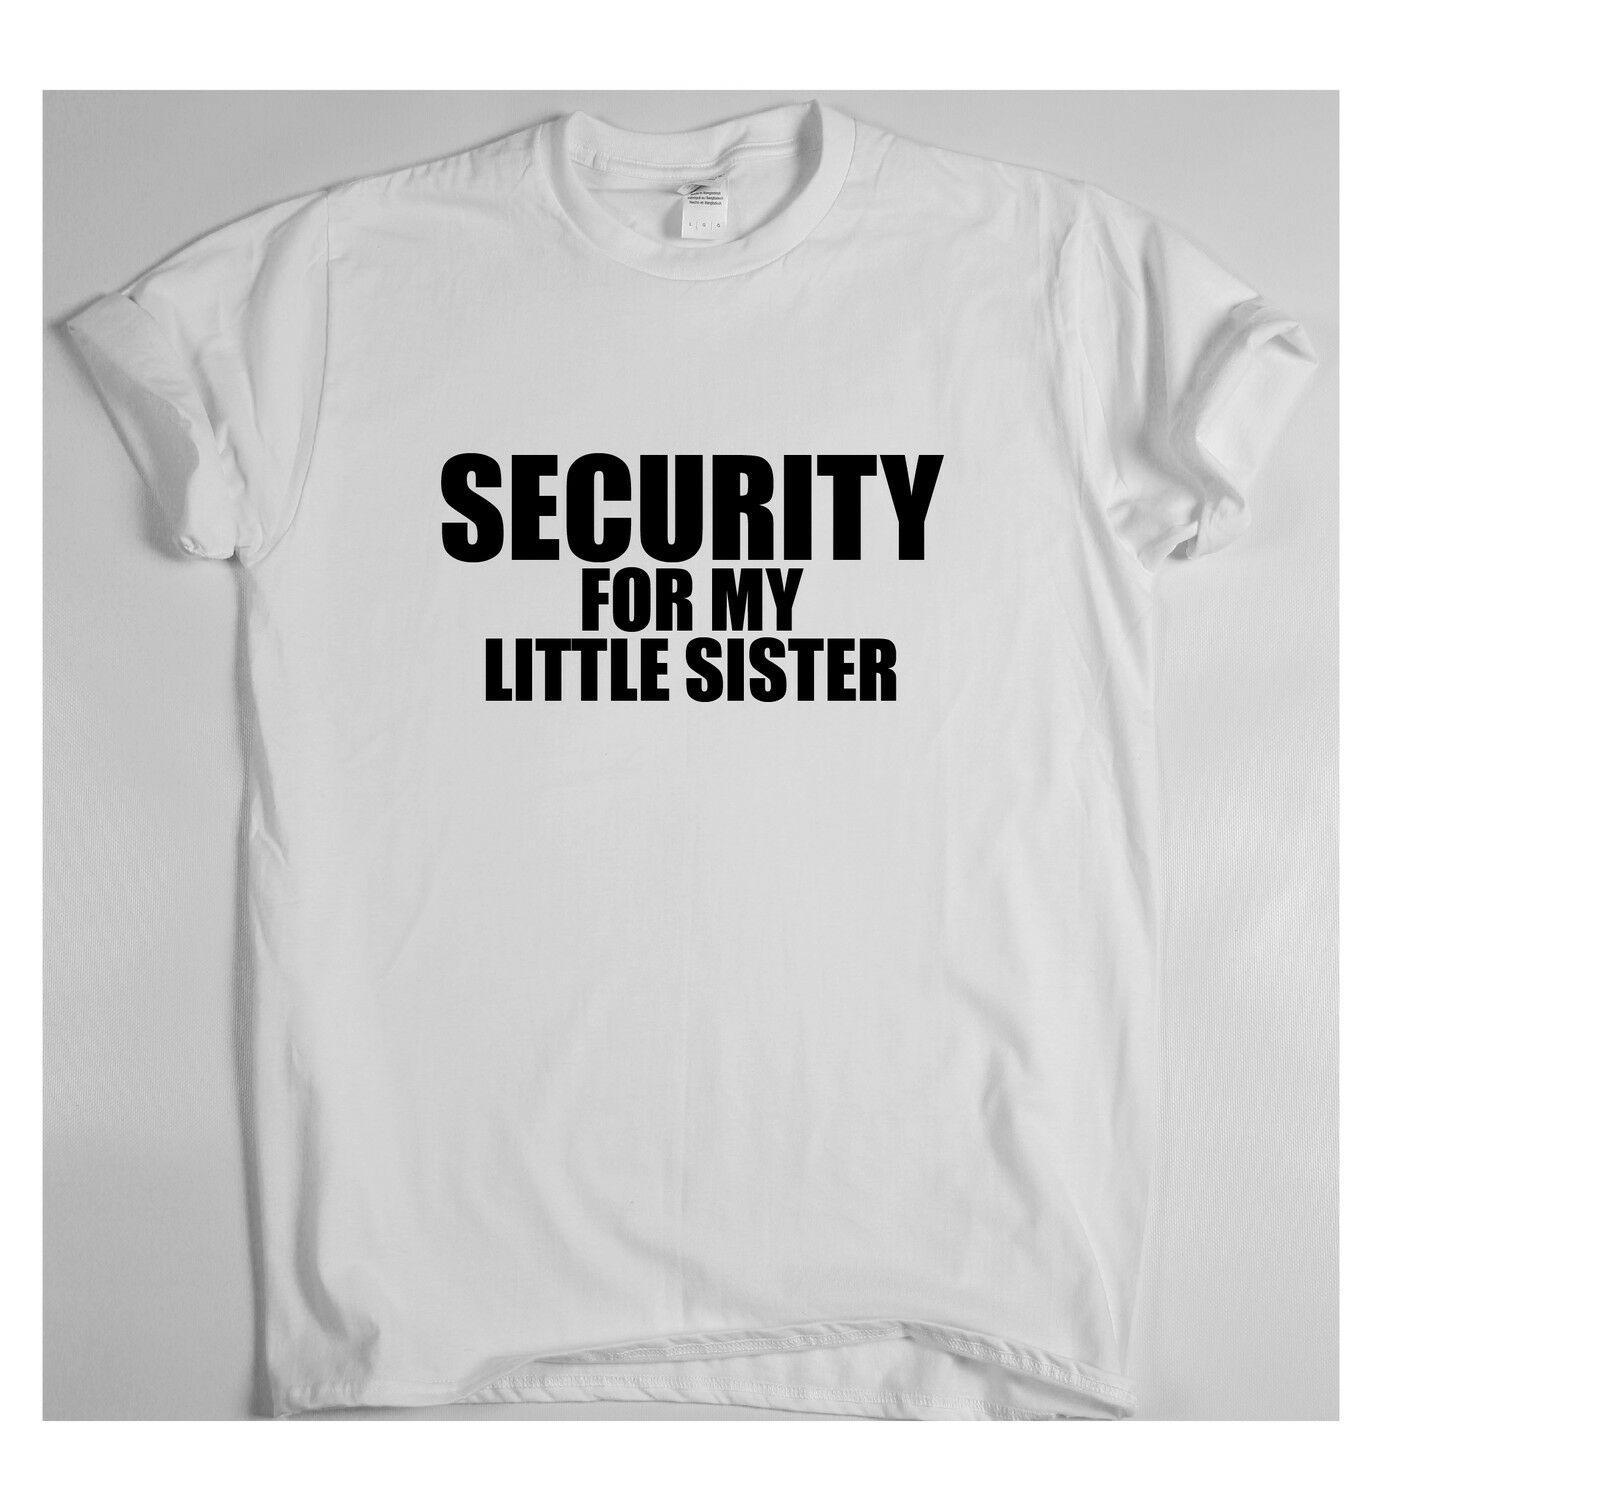 f97cb3c8 Security For My Little Sister Funny Brother T Shirt Siblings Slogan Top Gift  Print T Shirt,Hip Hop Tee Shirt,NEW ARRIVAL Tees Make T Shirts Shirt  Designs ...